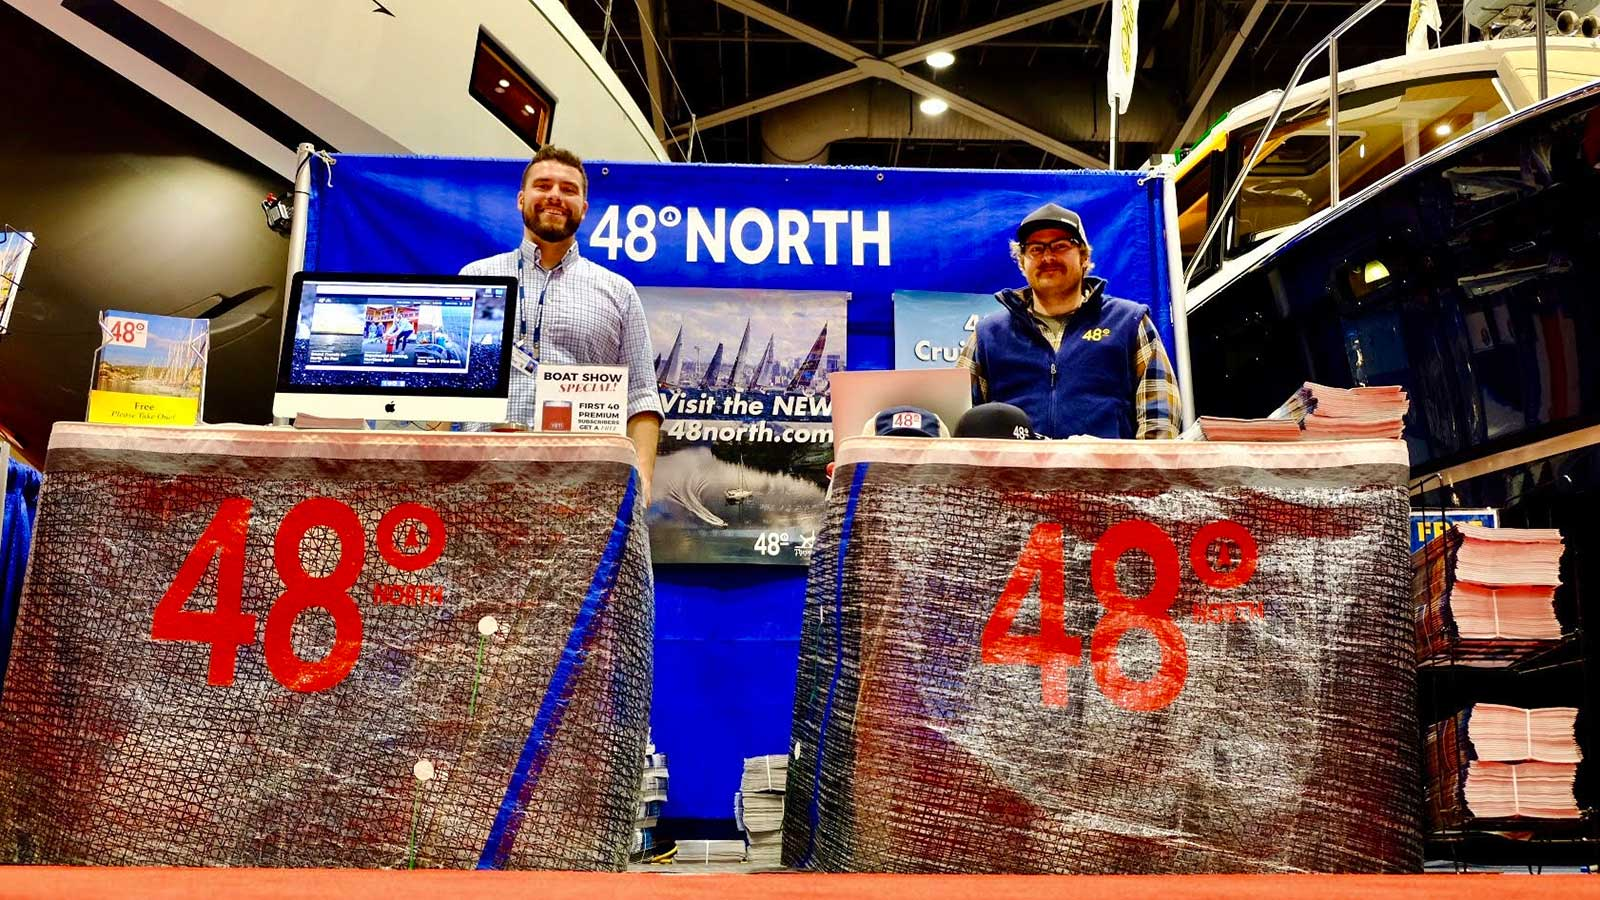 48º North at the Seattle Boat Show